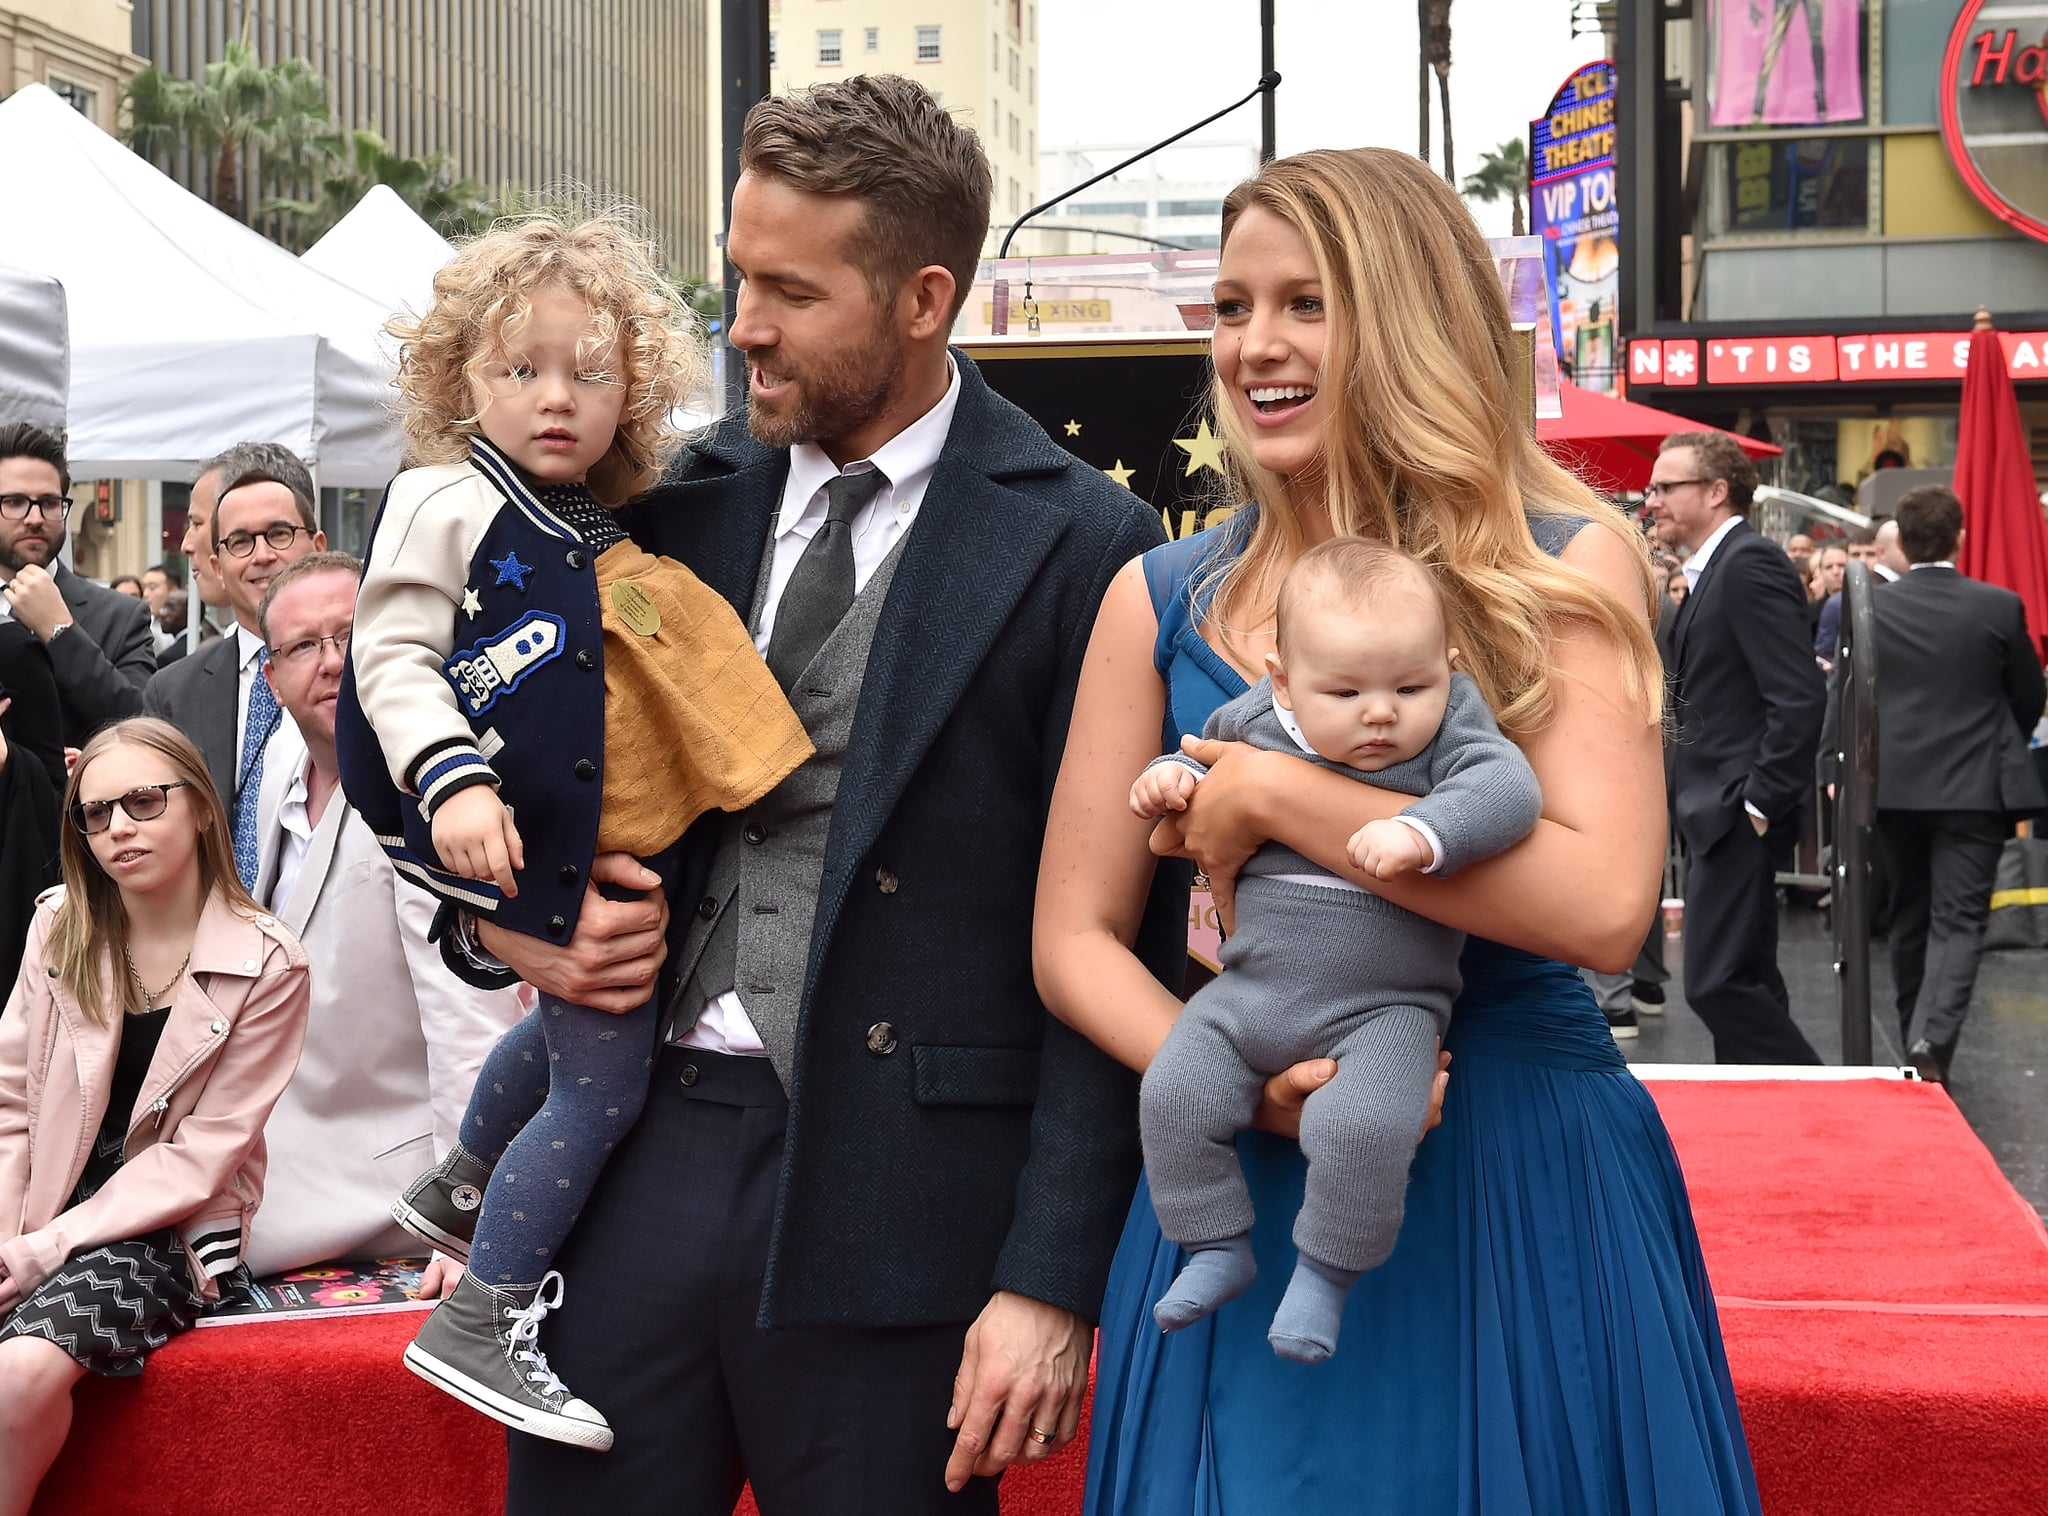 HOLLYWOOD, CA - DECEMBER 15:  Actors Ryan Reynolds and Blake Lively with daughters James Reynolds and Ines Reynolds attend the ceremony honouring Ryan Reynolds with a Star on the Hollywood Walk of Fame on December 15, 2016 in Hollywood, California.  (Photo by Axelle/Bauer-Griffin/FilmMagic)